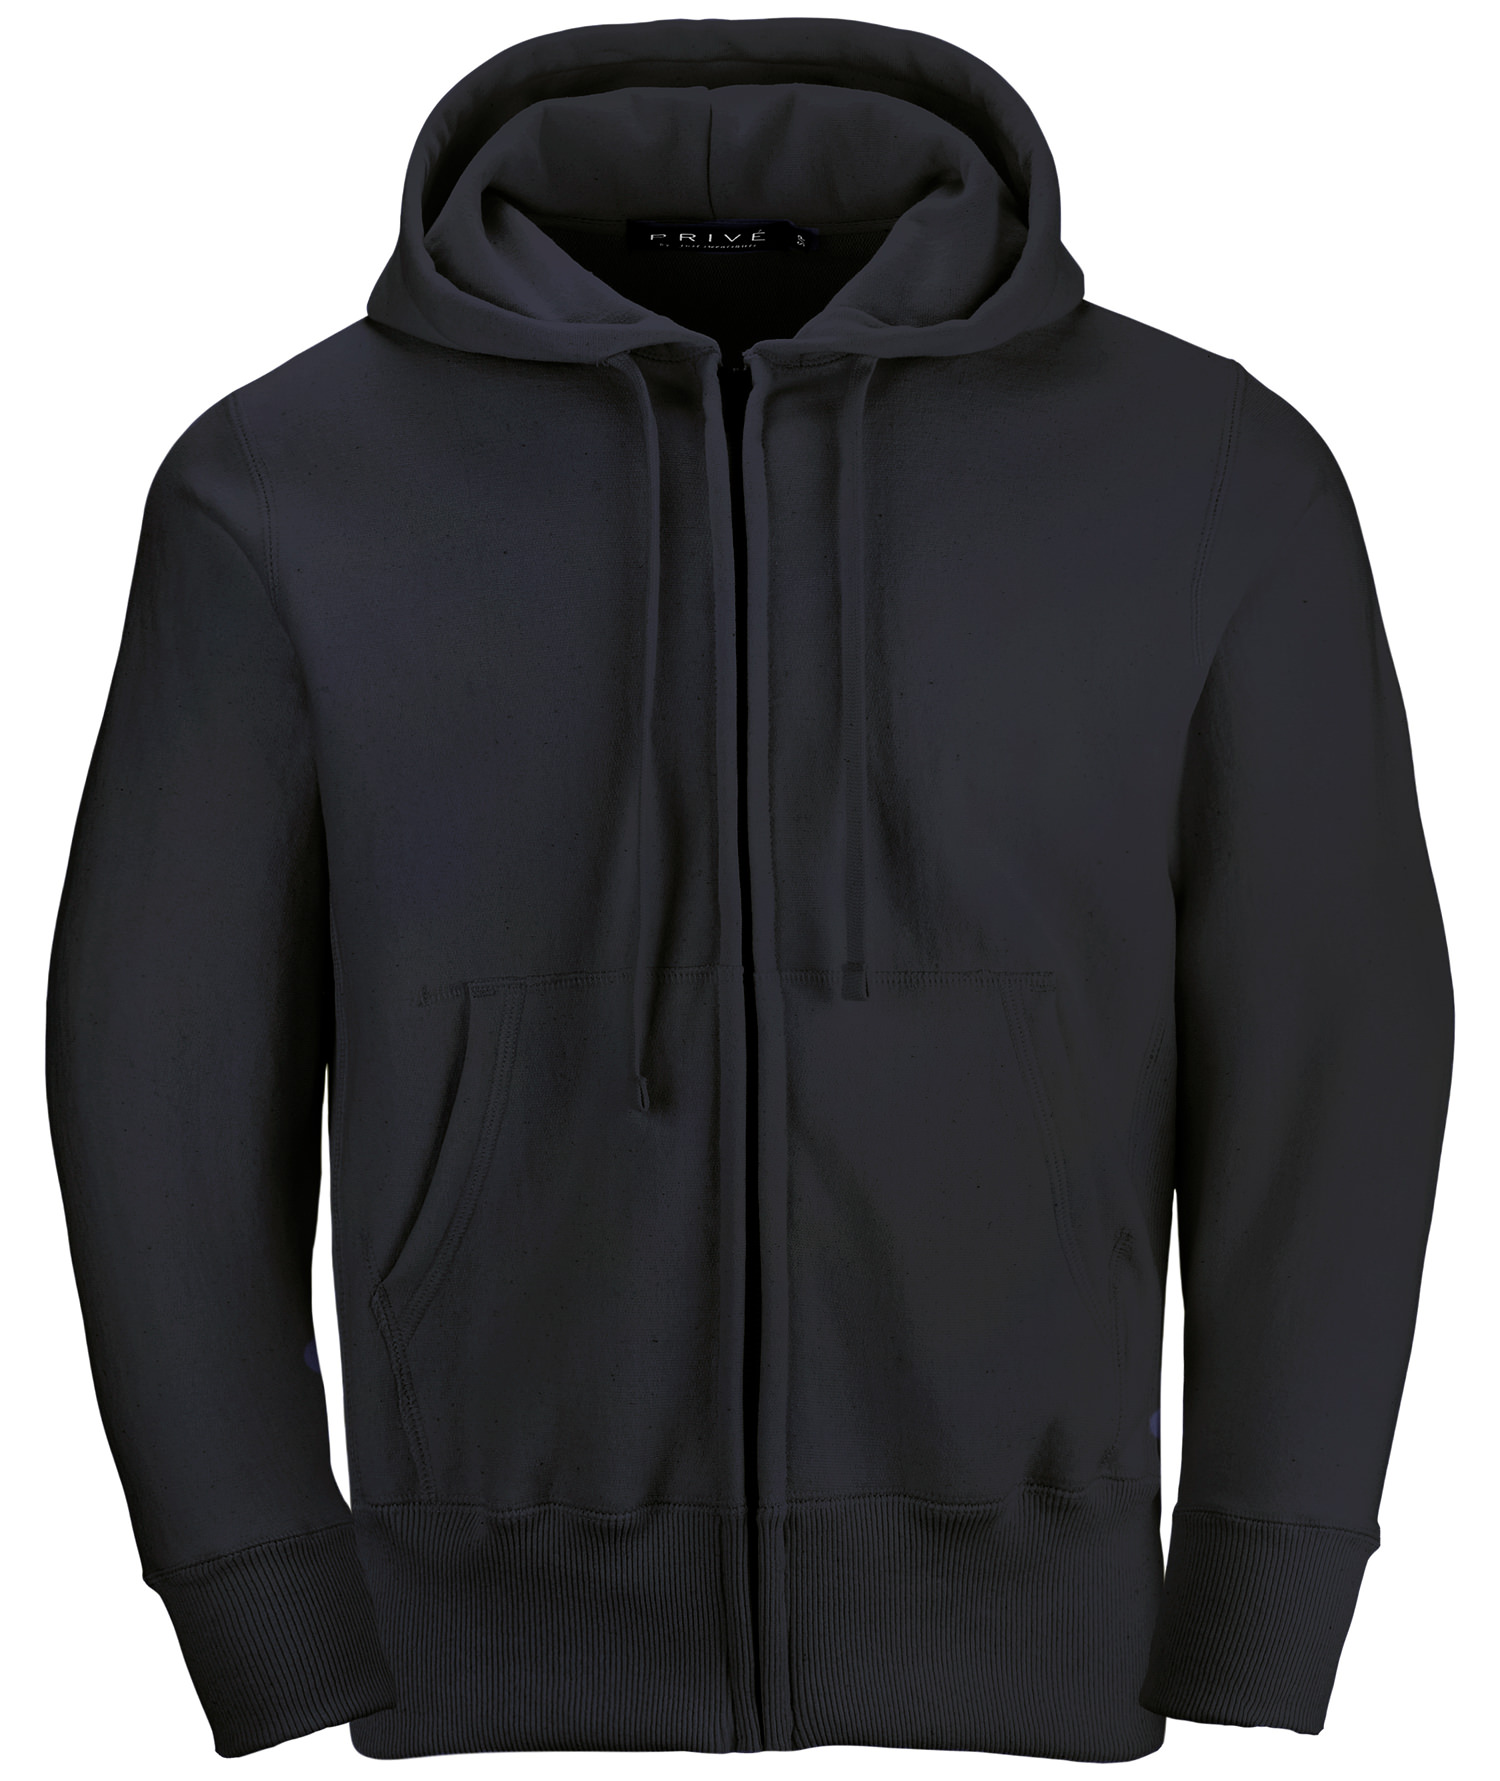 PRIVÉ Full Zip Hoodie Black with Side Rib 100% Cotton